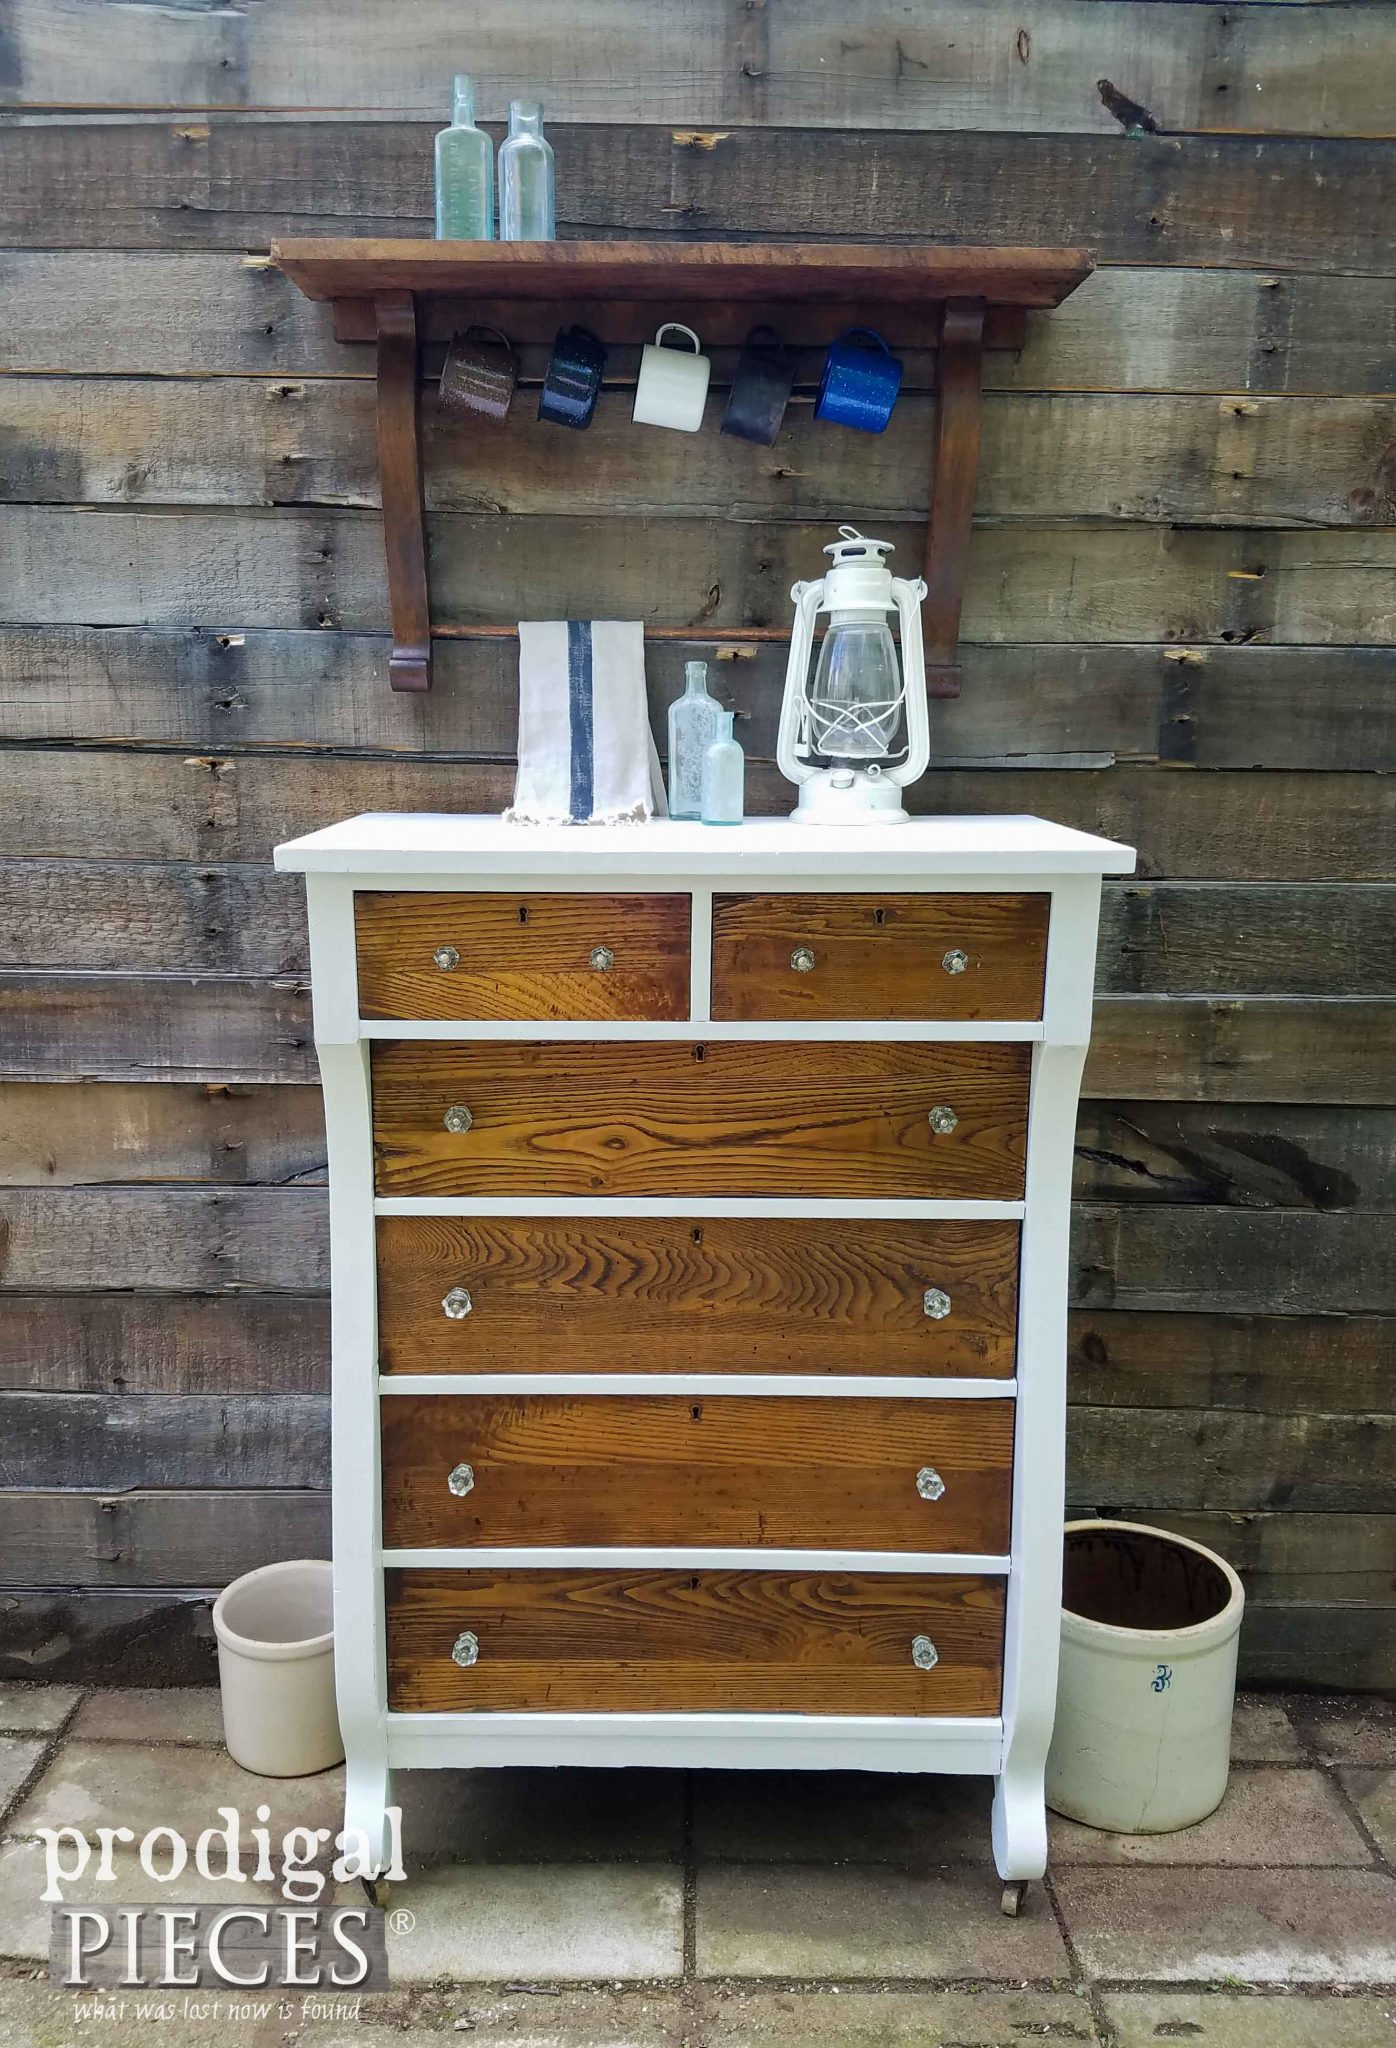 Antique Empire Chest Is Given New Life With Repurposed Mirror Harp Shelf By Prodigal Pieces